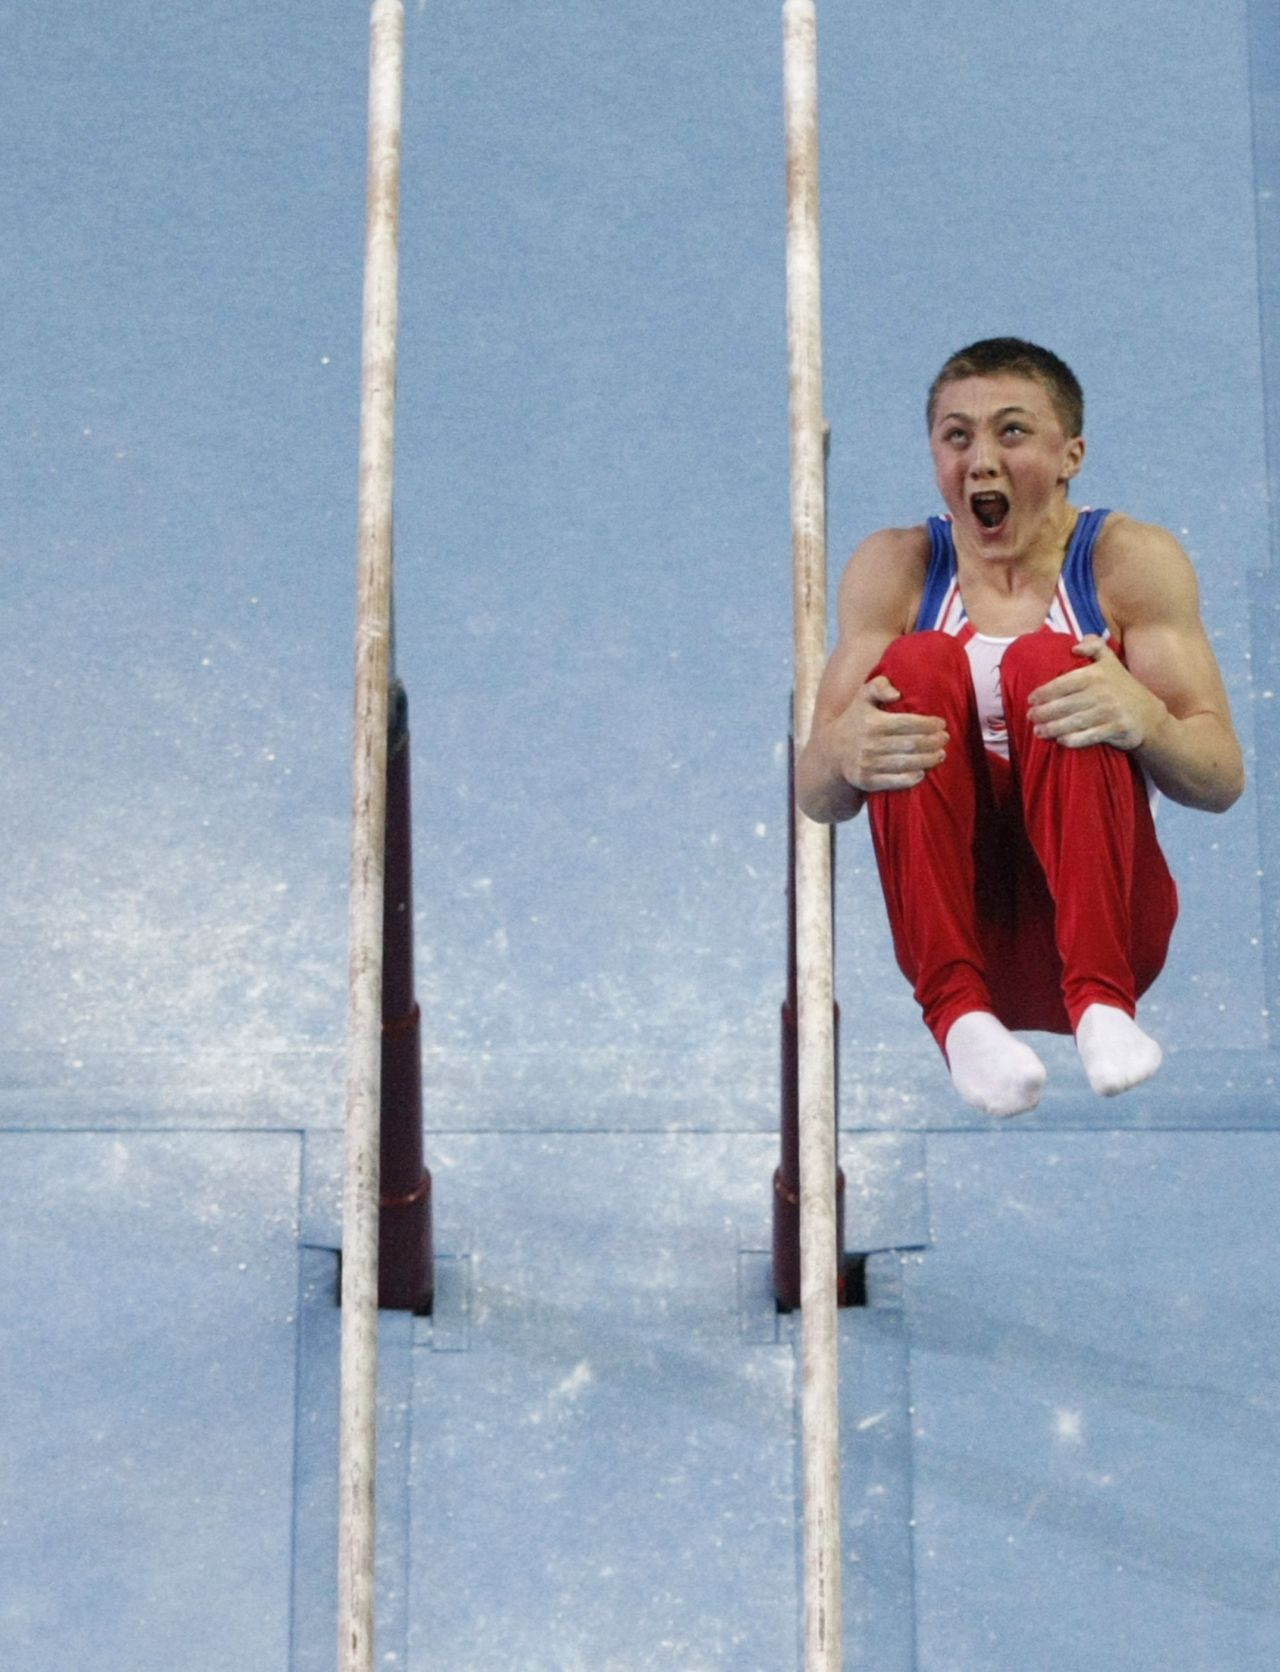 Sam Oldham of Britain performs on the parallel bars during the men's individual all-around final of the artistic gymnastics competition at the Youth Olympic Games (YOG) in Singapore August 18, 2010. REUTERS/Issei Kato (SINGAPORE - Tags: SPORT OLYMPICS GYMNASTICS IMAGES OF THE DAY)